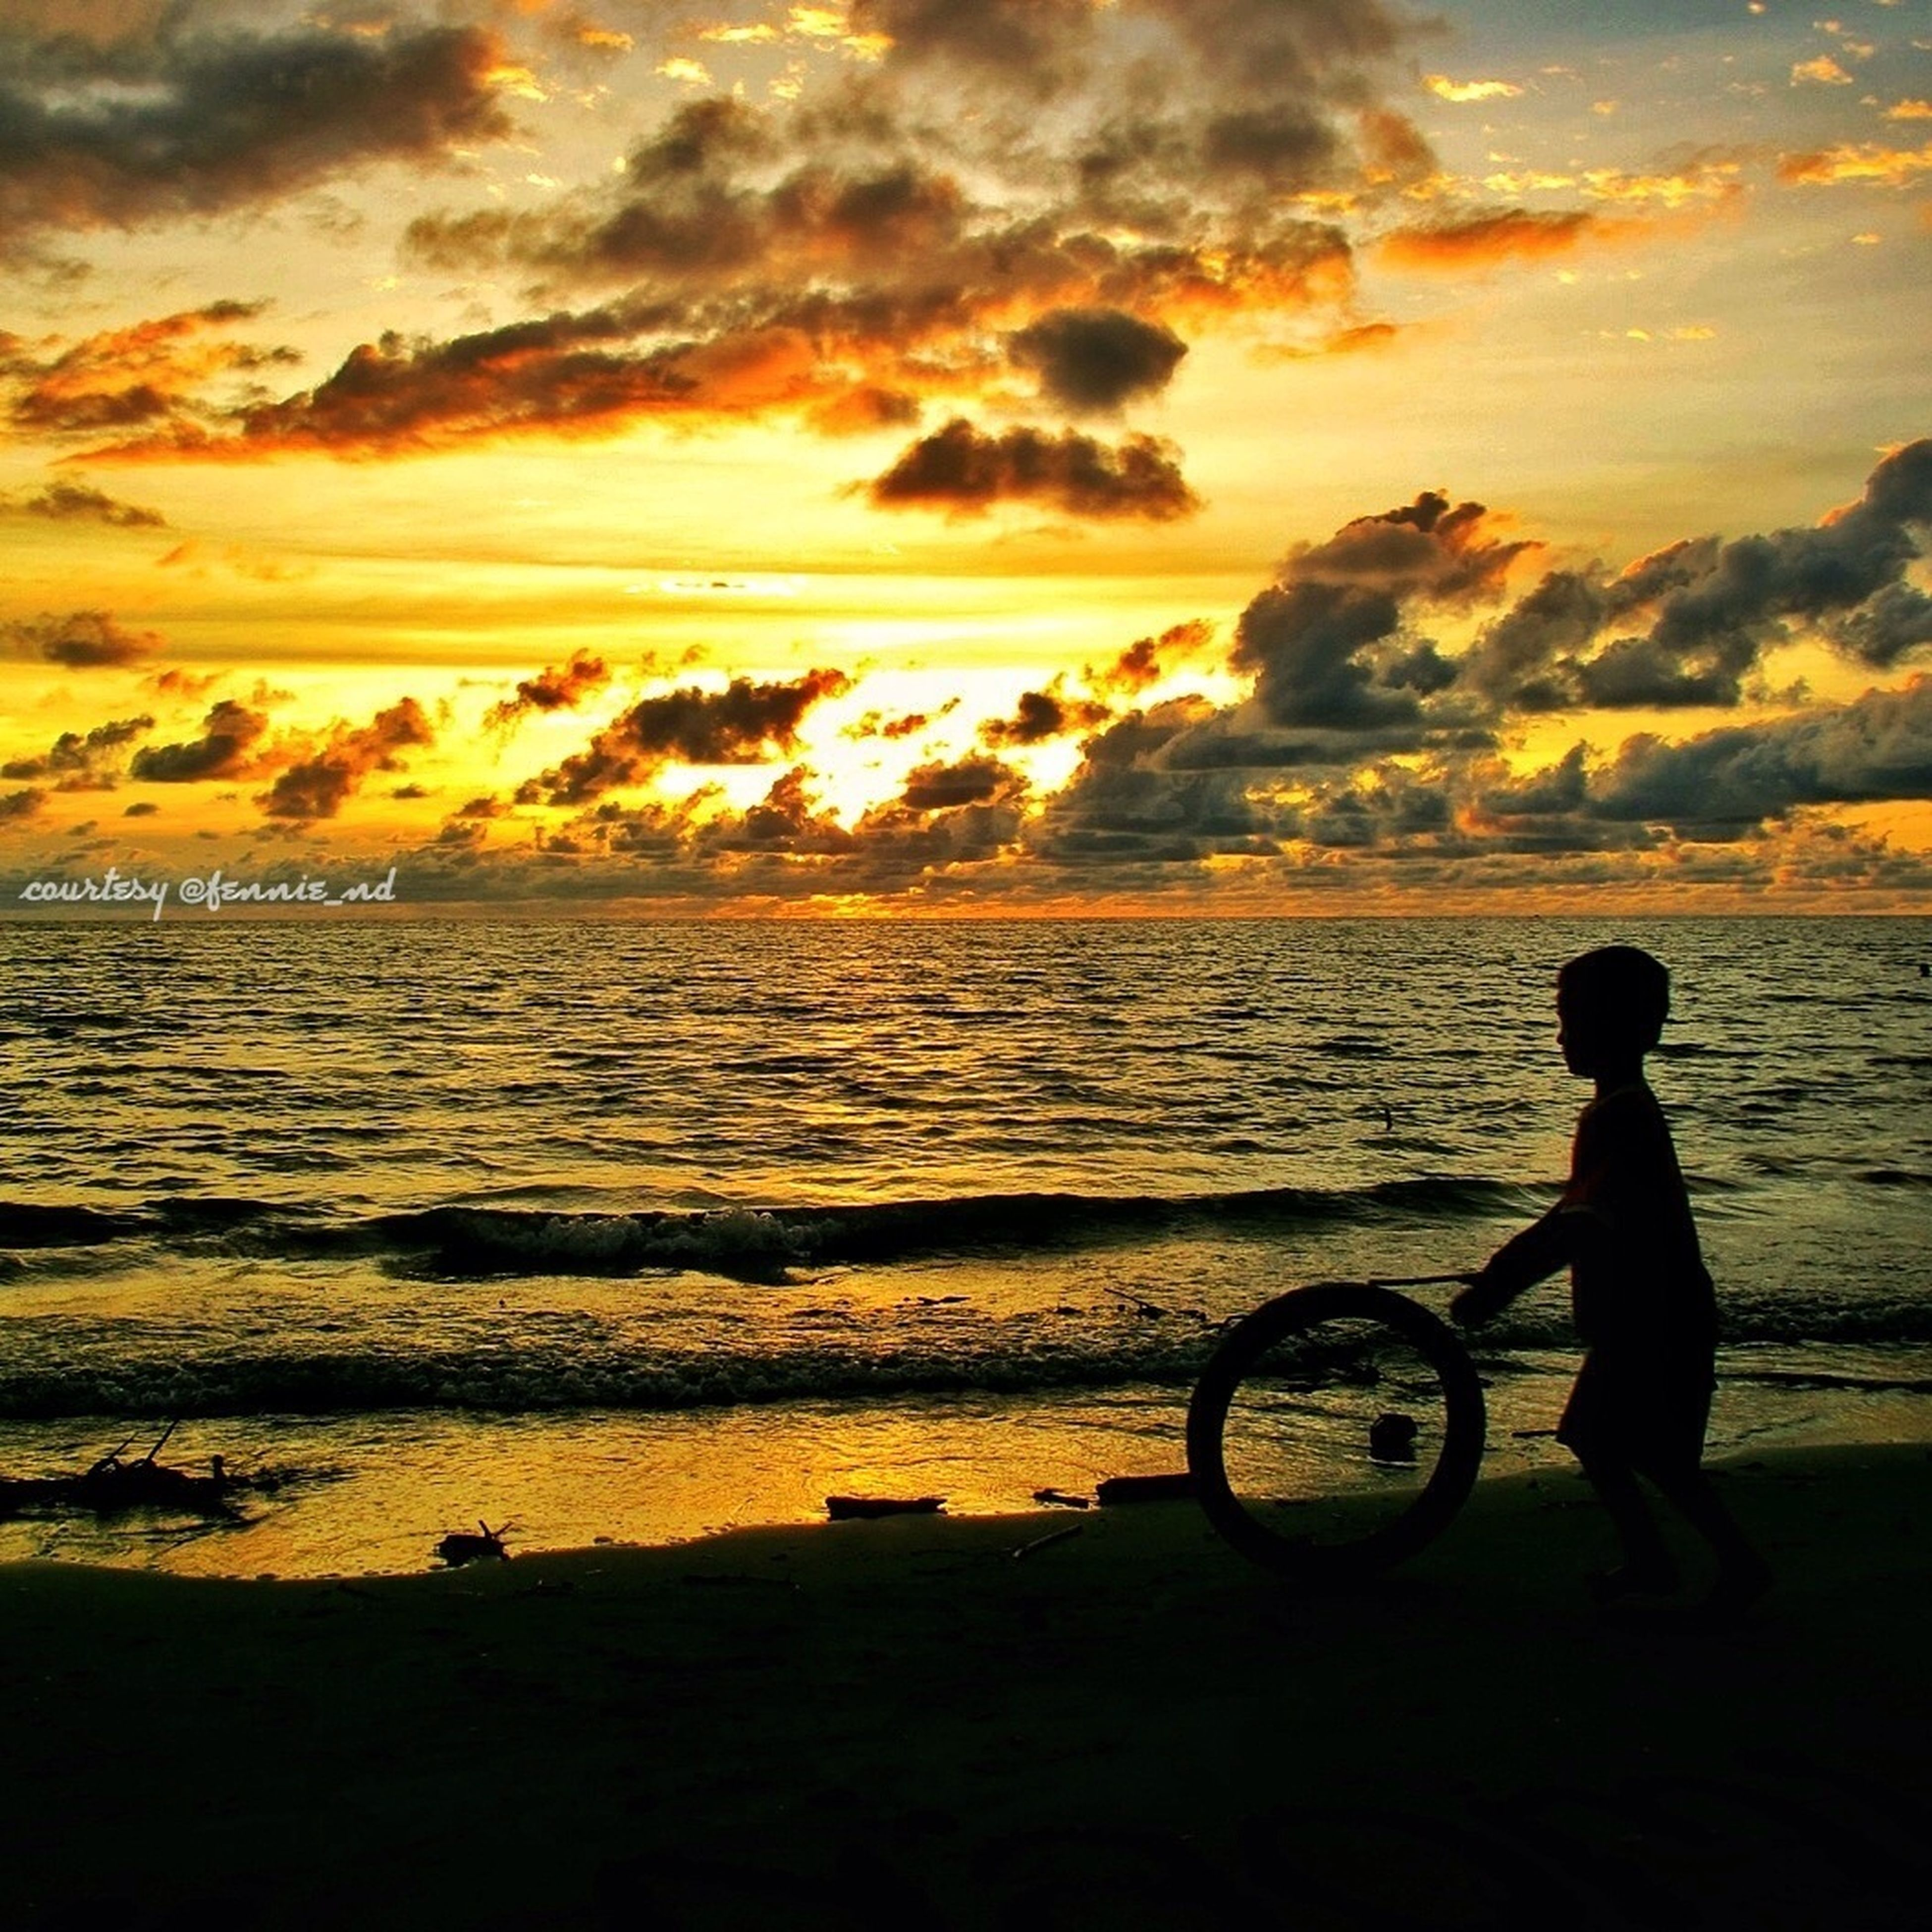 sunset, water, sea, sky, silhouette, leisure activity, lifestyles, bicycle, horizon over water, beach, men, cloud - sky, shore, transportation, mode of transport, scenics, beauty in nature, full length